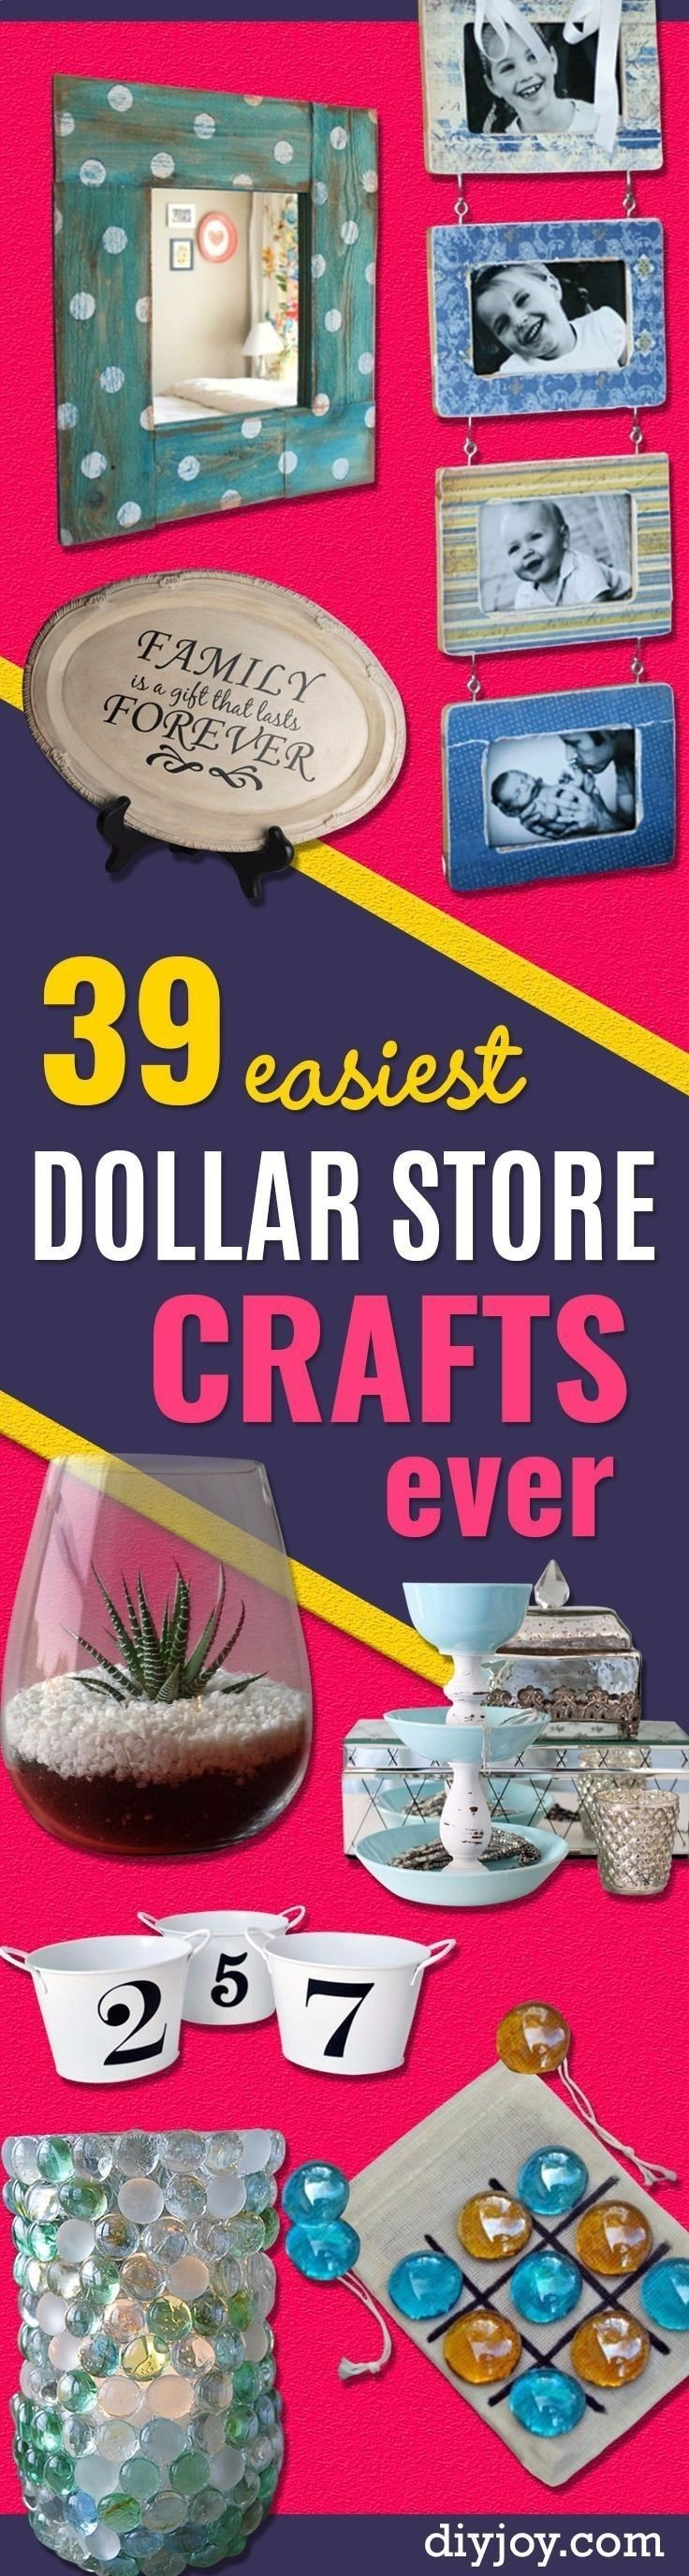 10 Lovely Craft Ideas To Make Money From Home earn money from home 39 easiest dollar store crafts ever quick and 2021